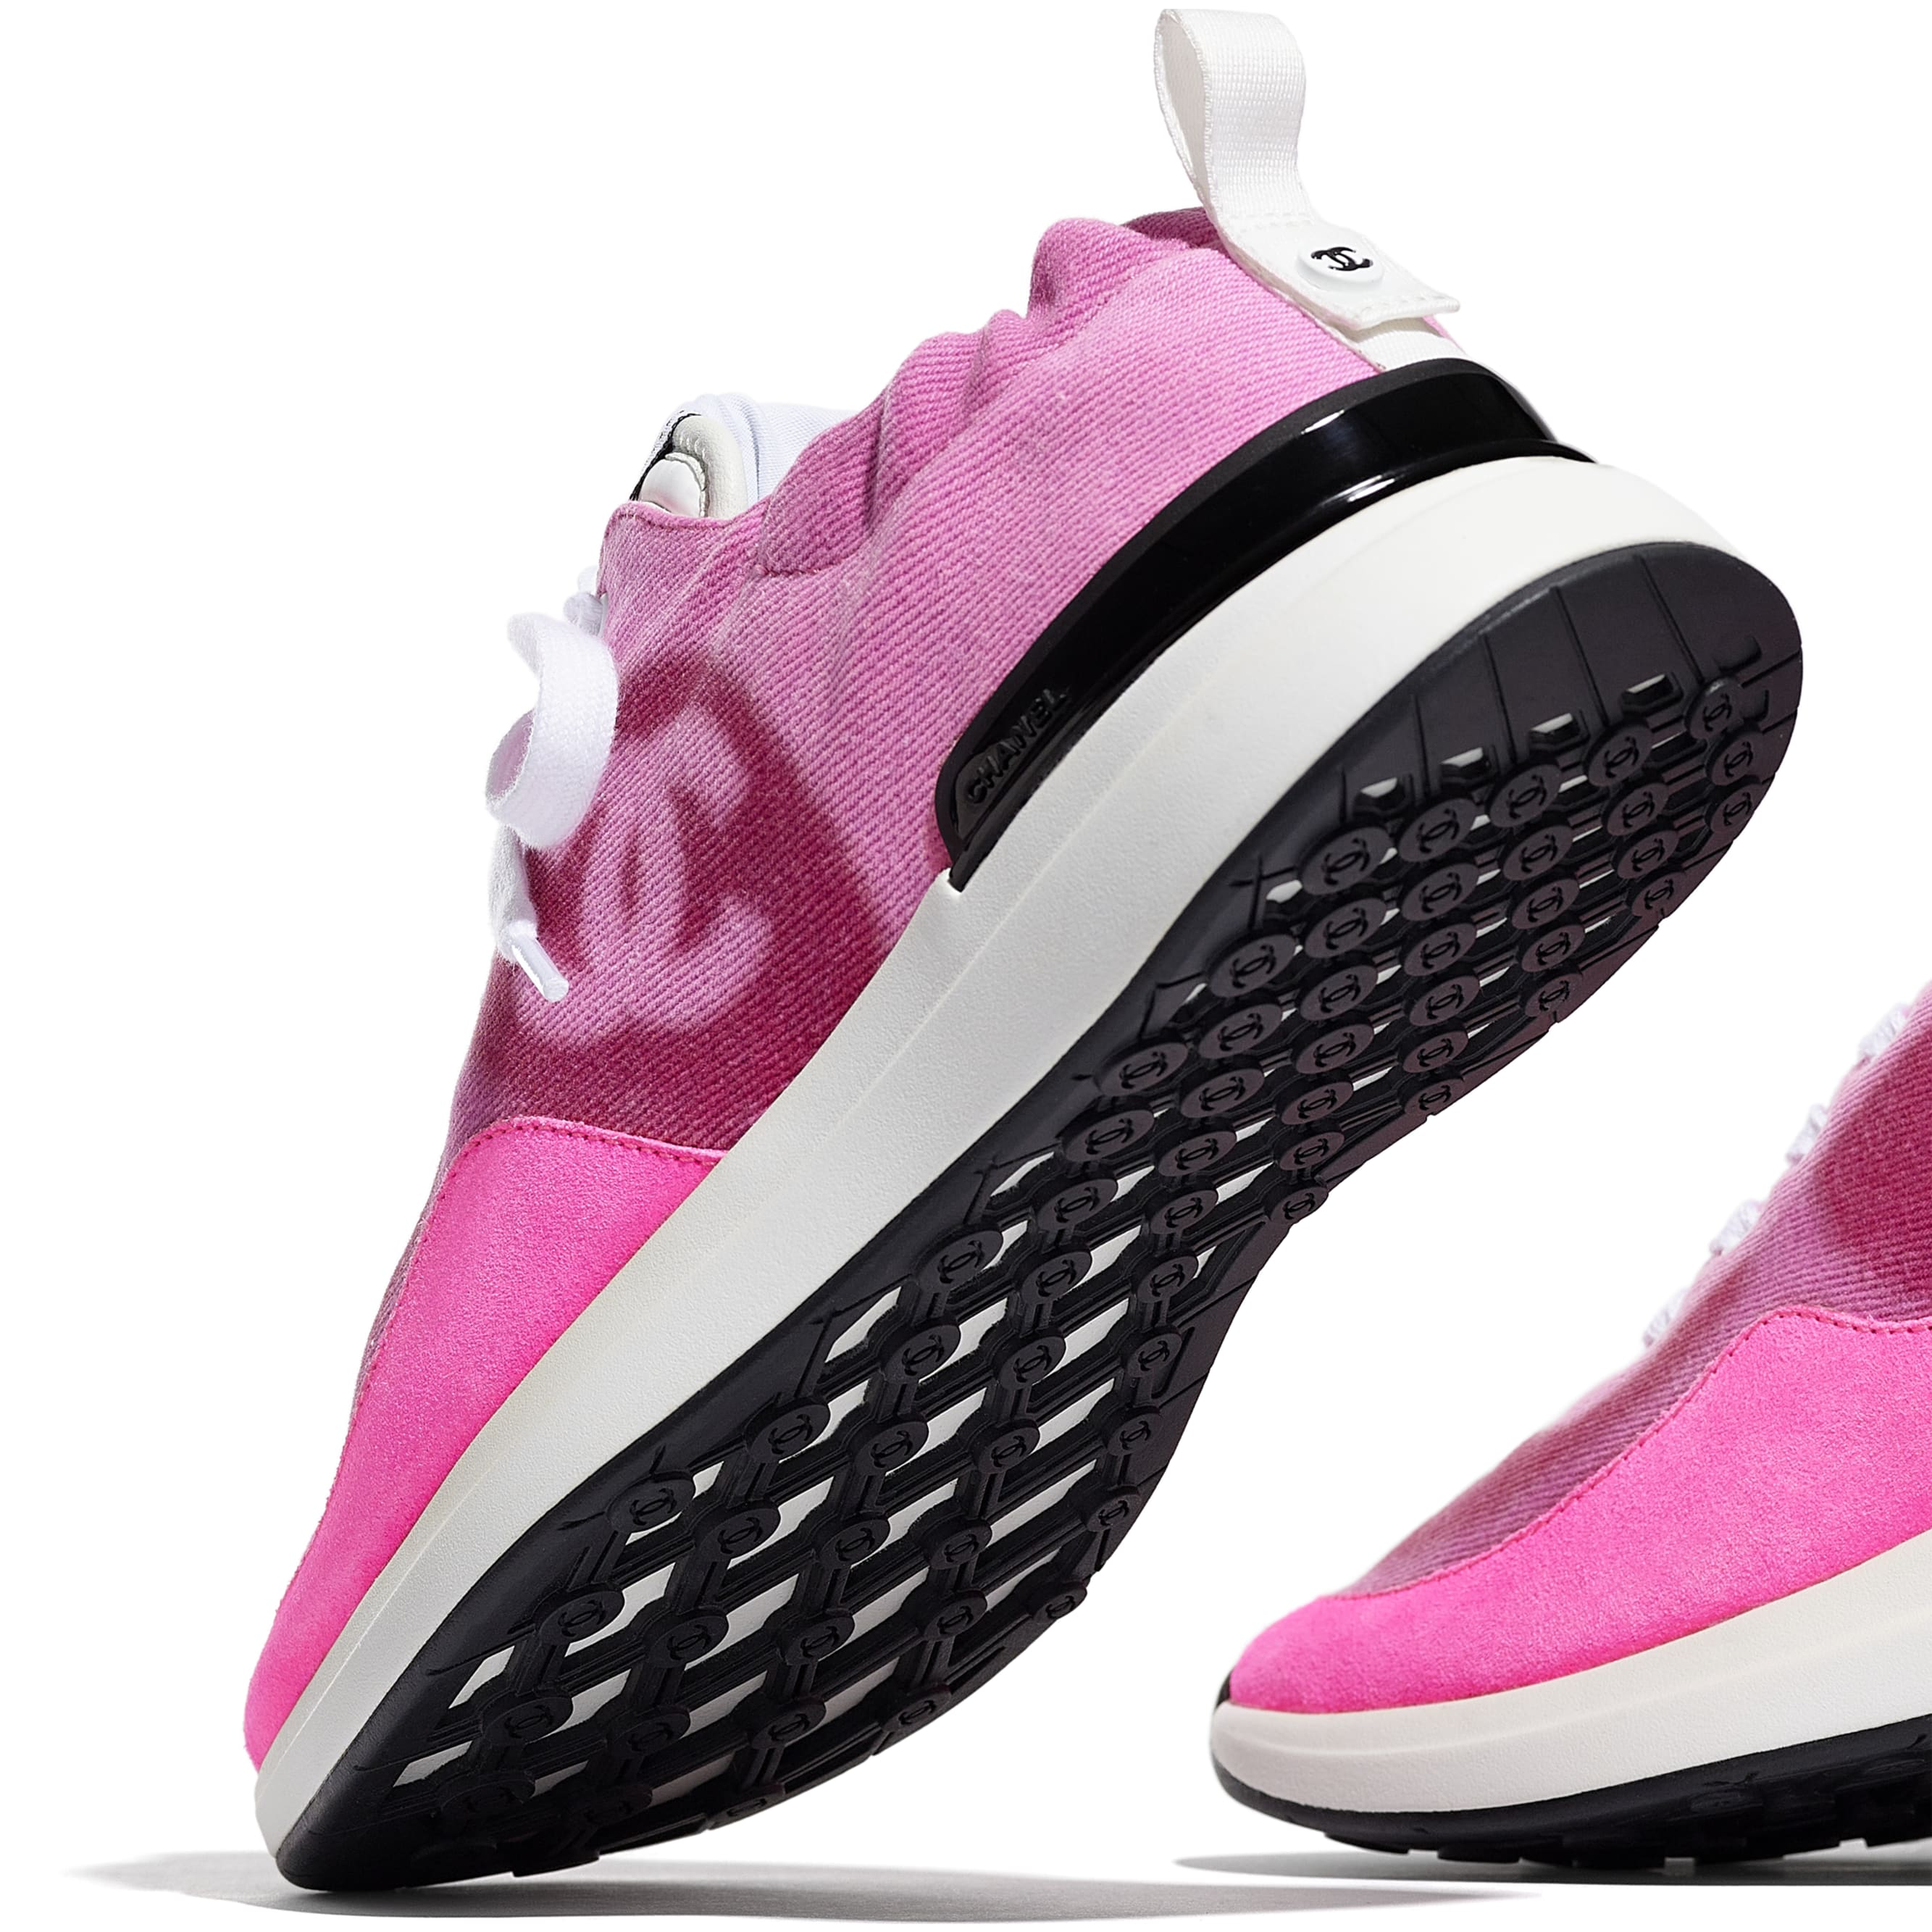 Trainers - Neon Pink - Denim & Suede Calfskin - CHANEL - Extra view - see standard sized version